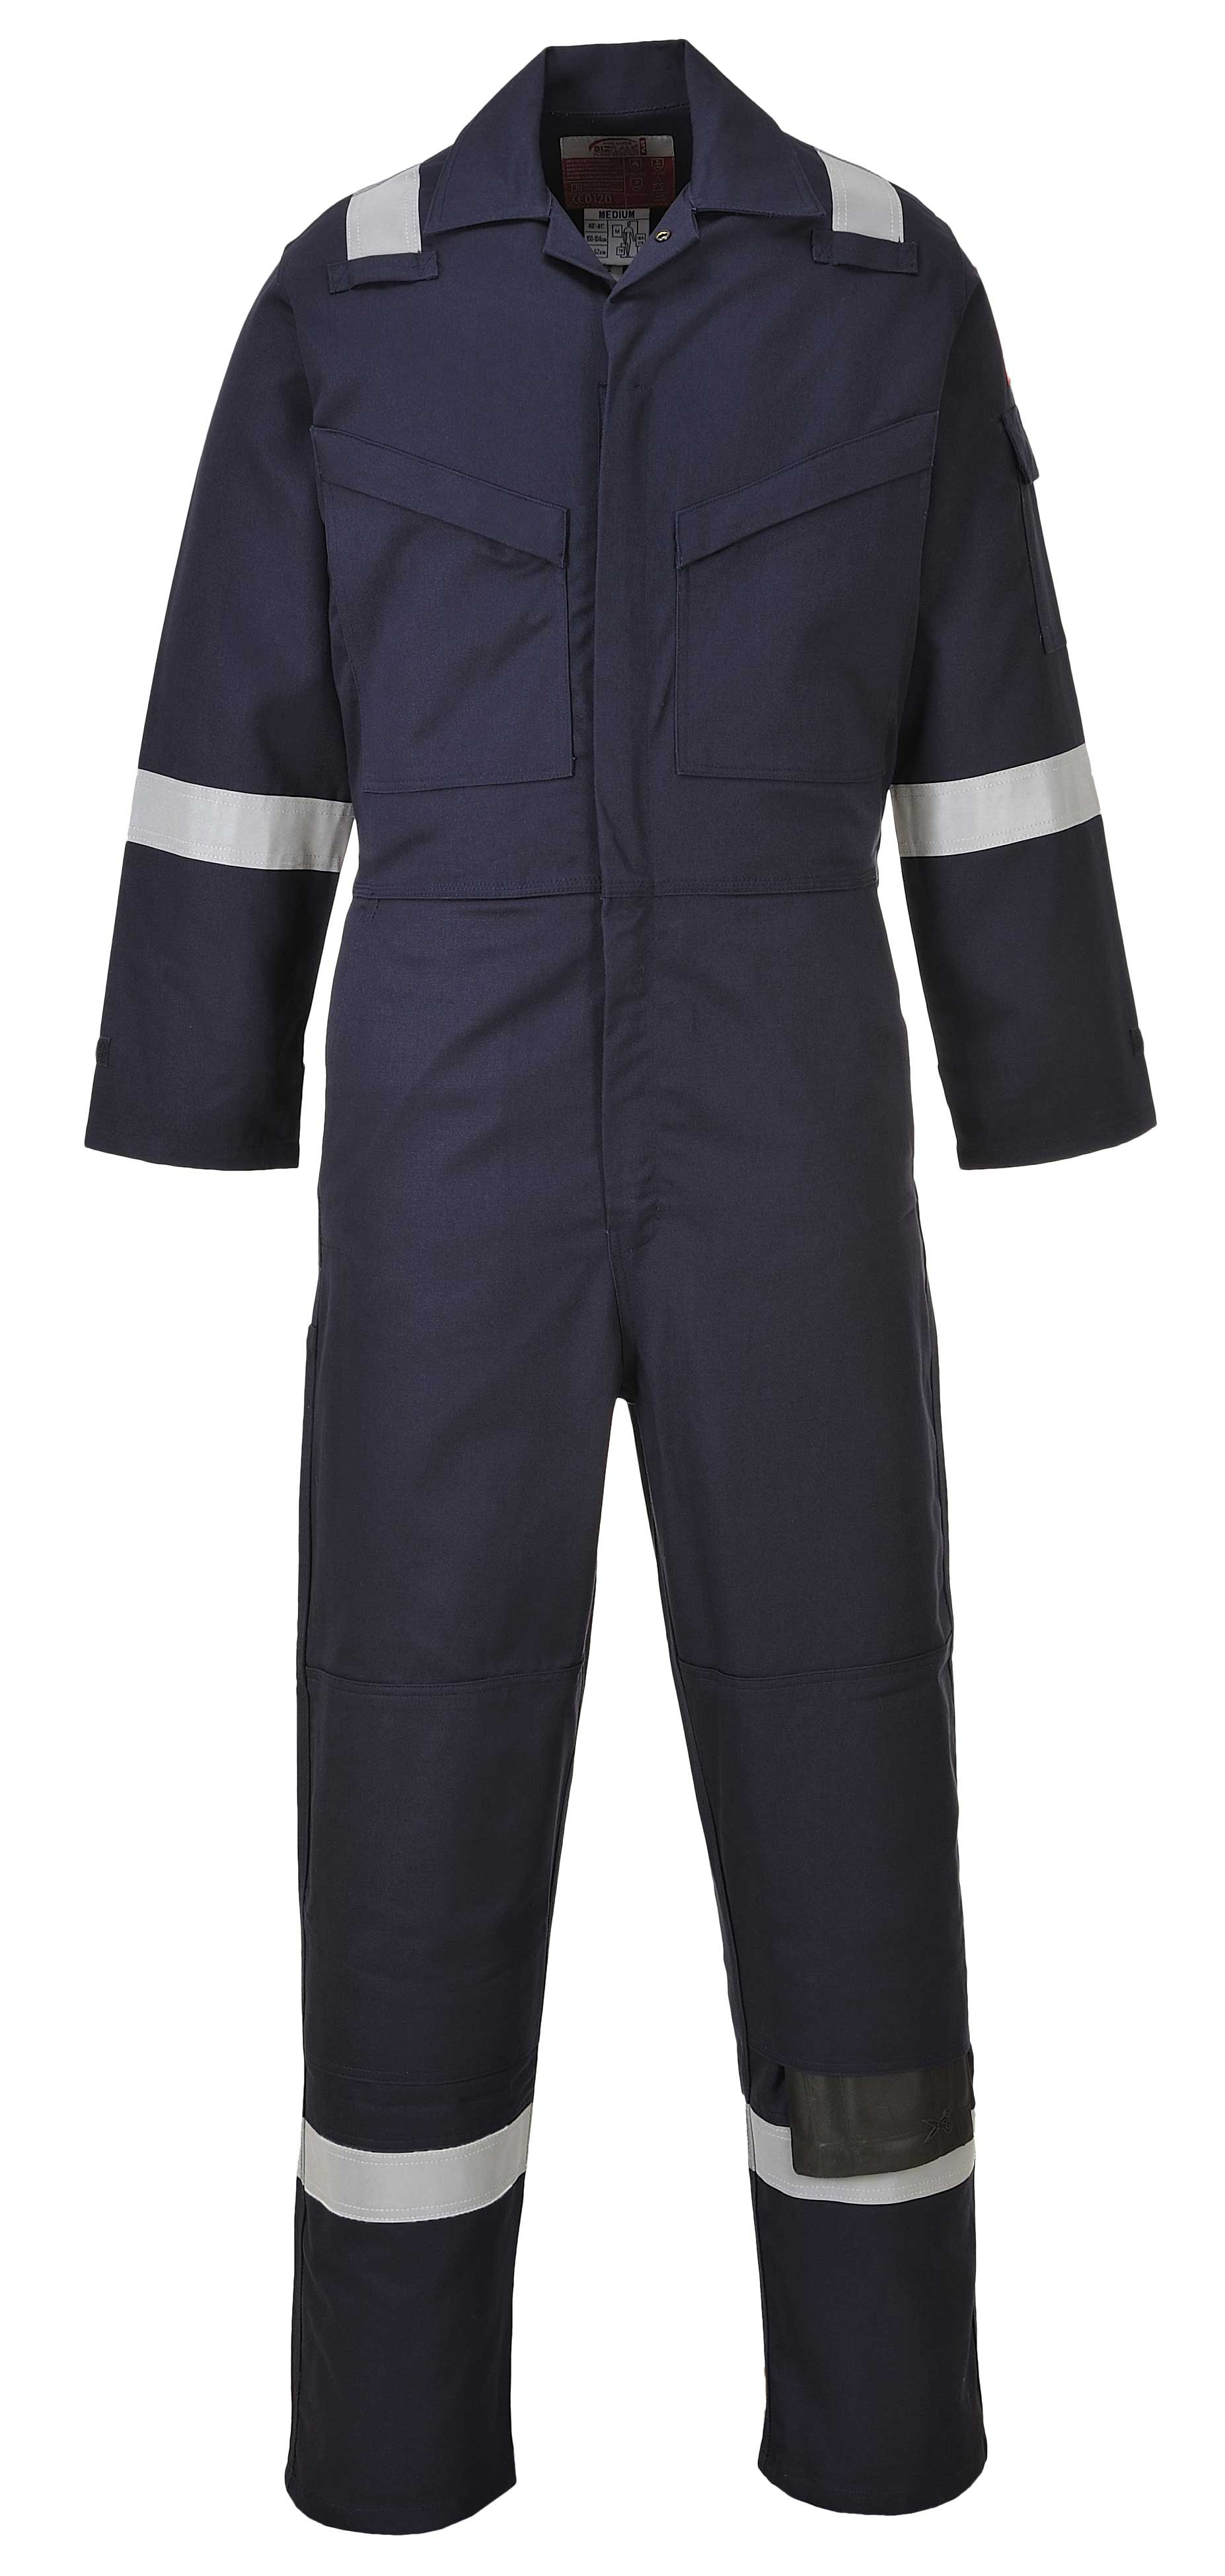 Northrock Safety Araflame Gold Coverall Flame Resistant